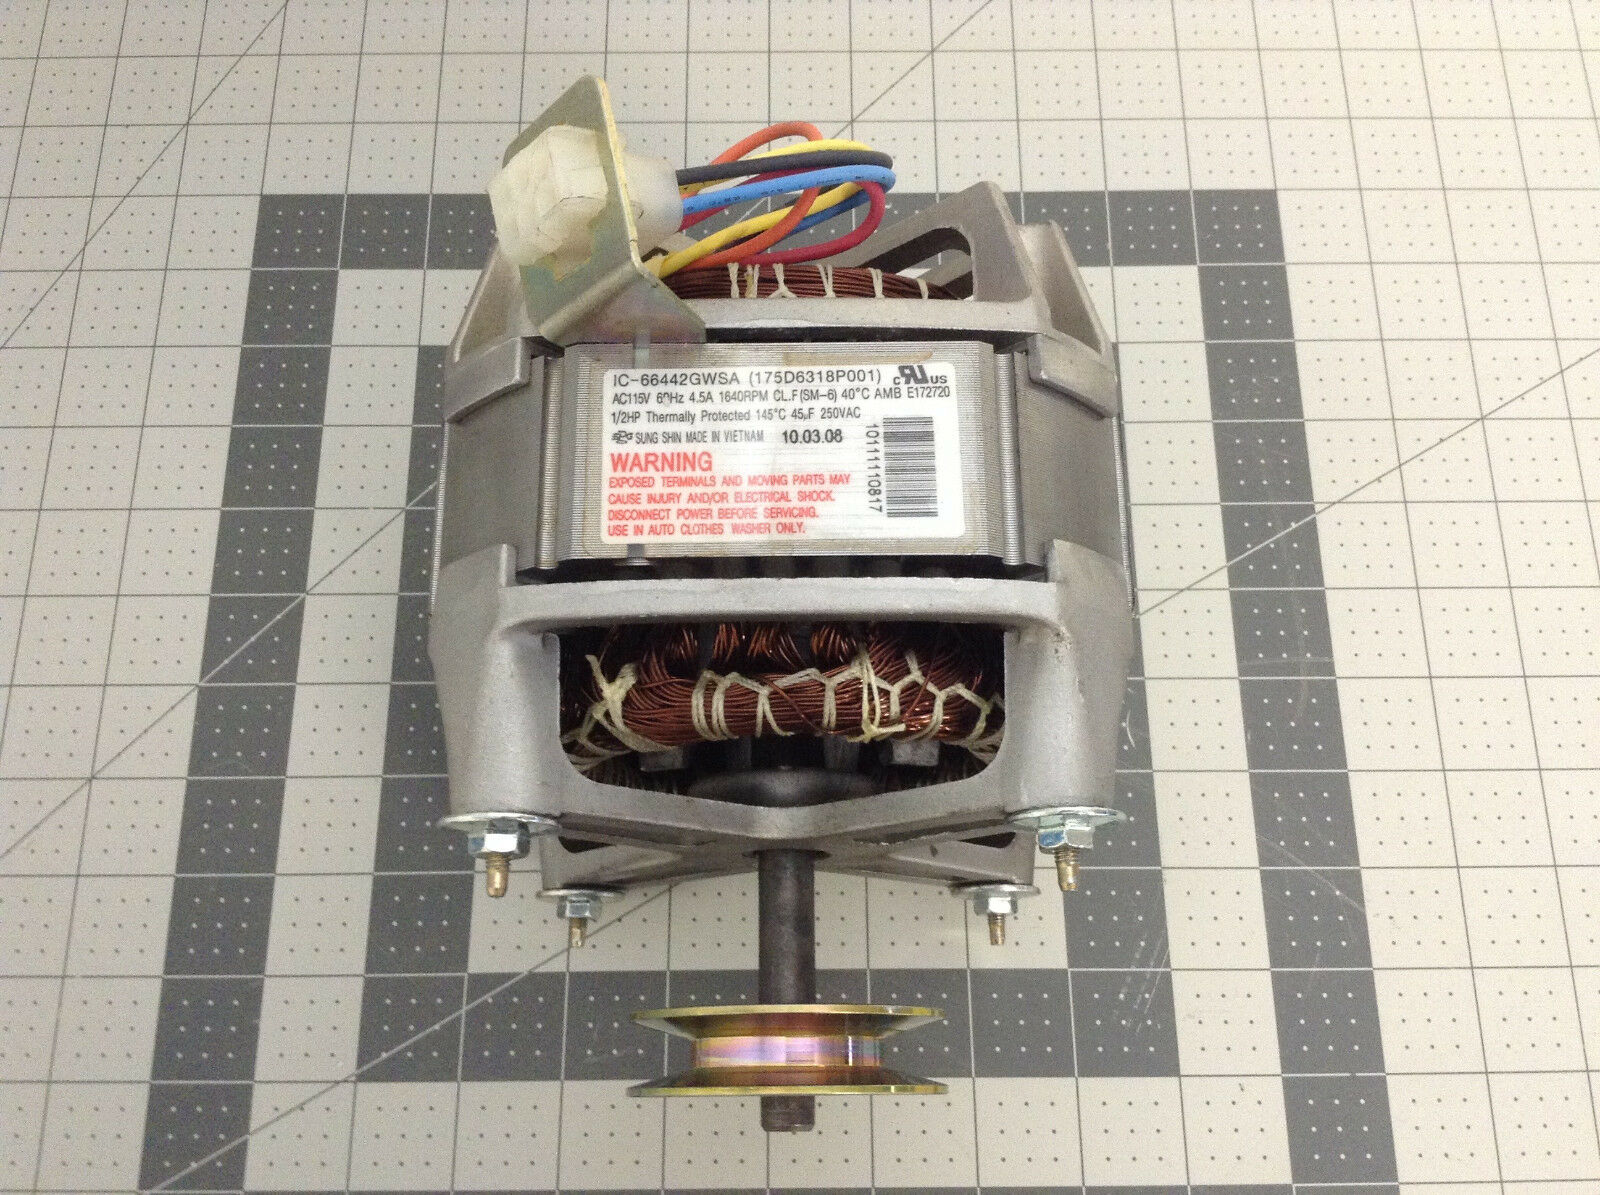 Machine Diagram Motor Washing Wiring 175d6318p001 Electric D P On Parts Capacitor